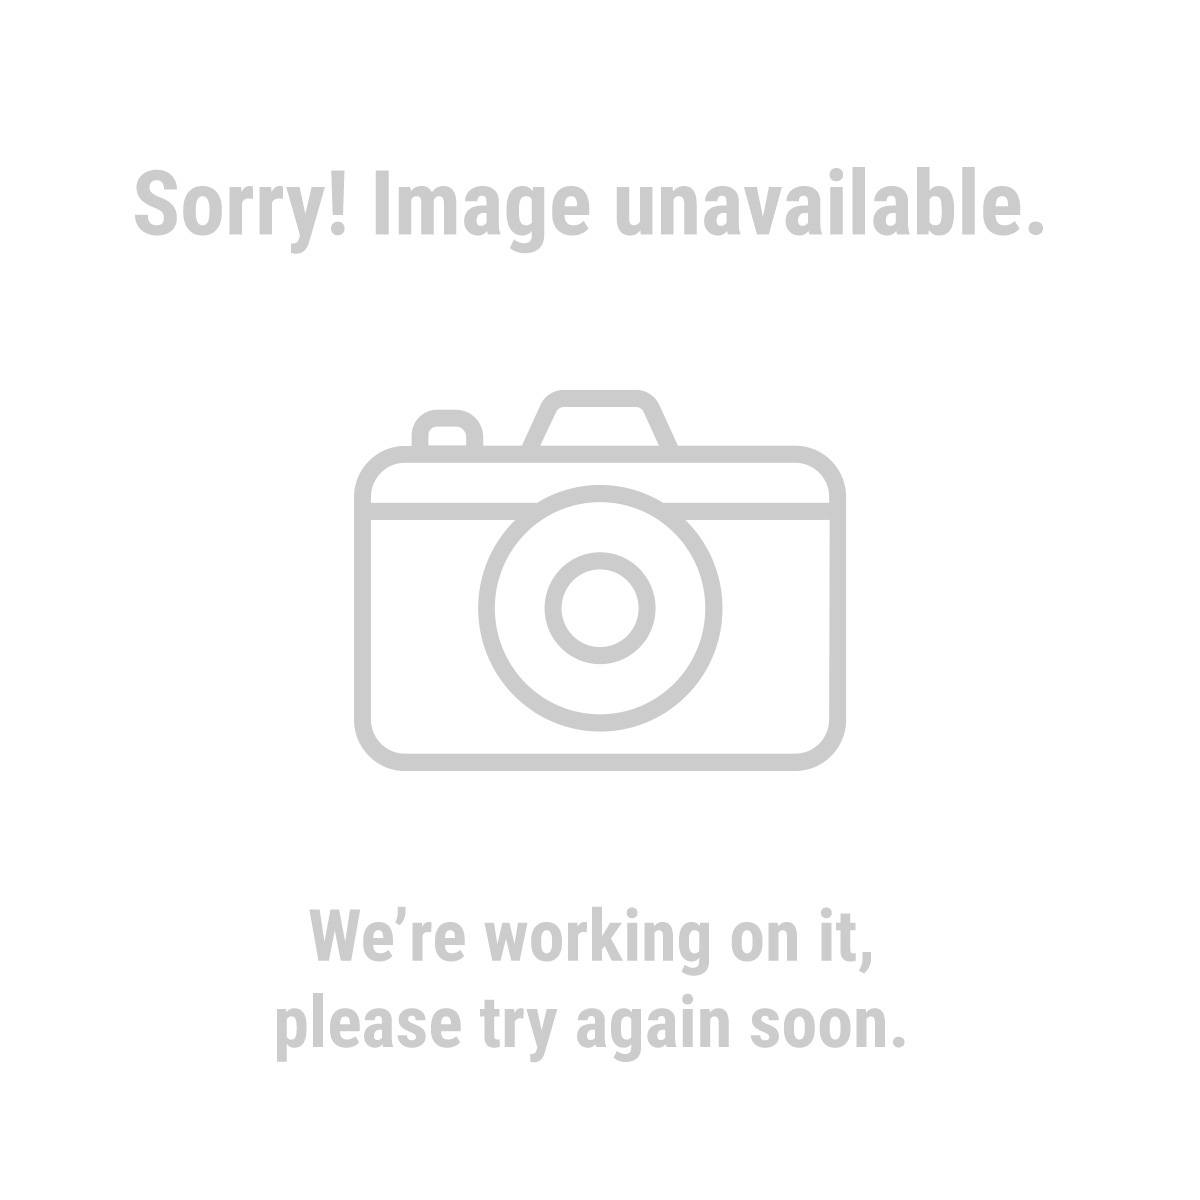 Pittsburgh Automotive 66480 12 Ton Heavy Duty Industrial Hydraulic Bottle Jack